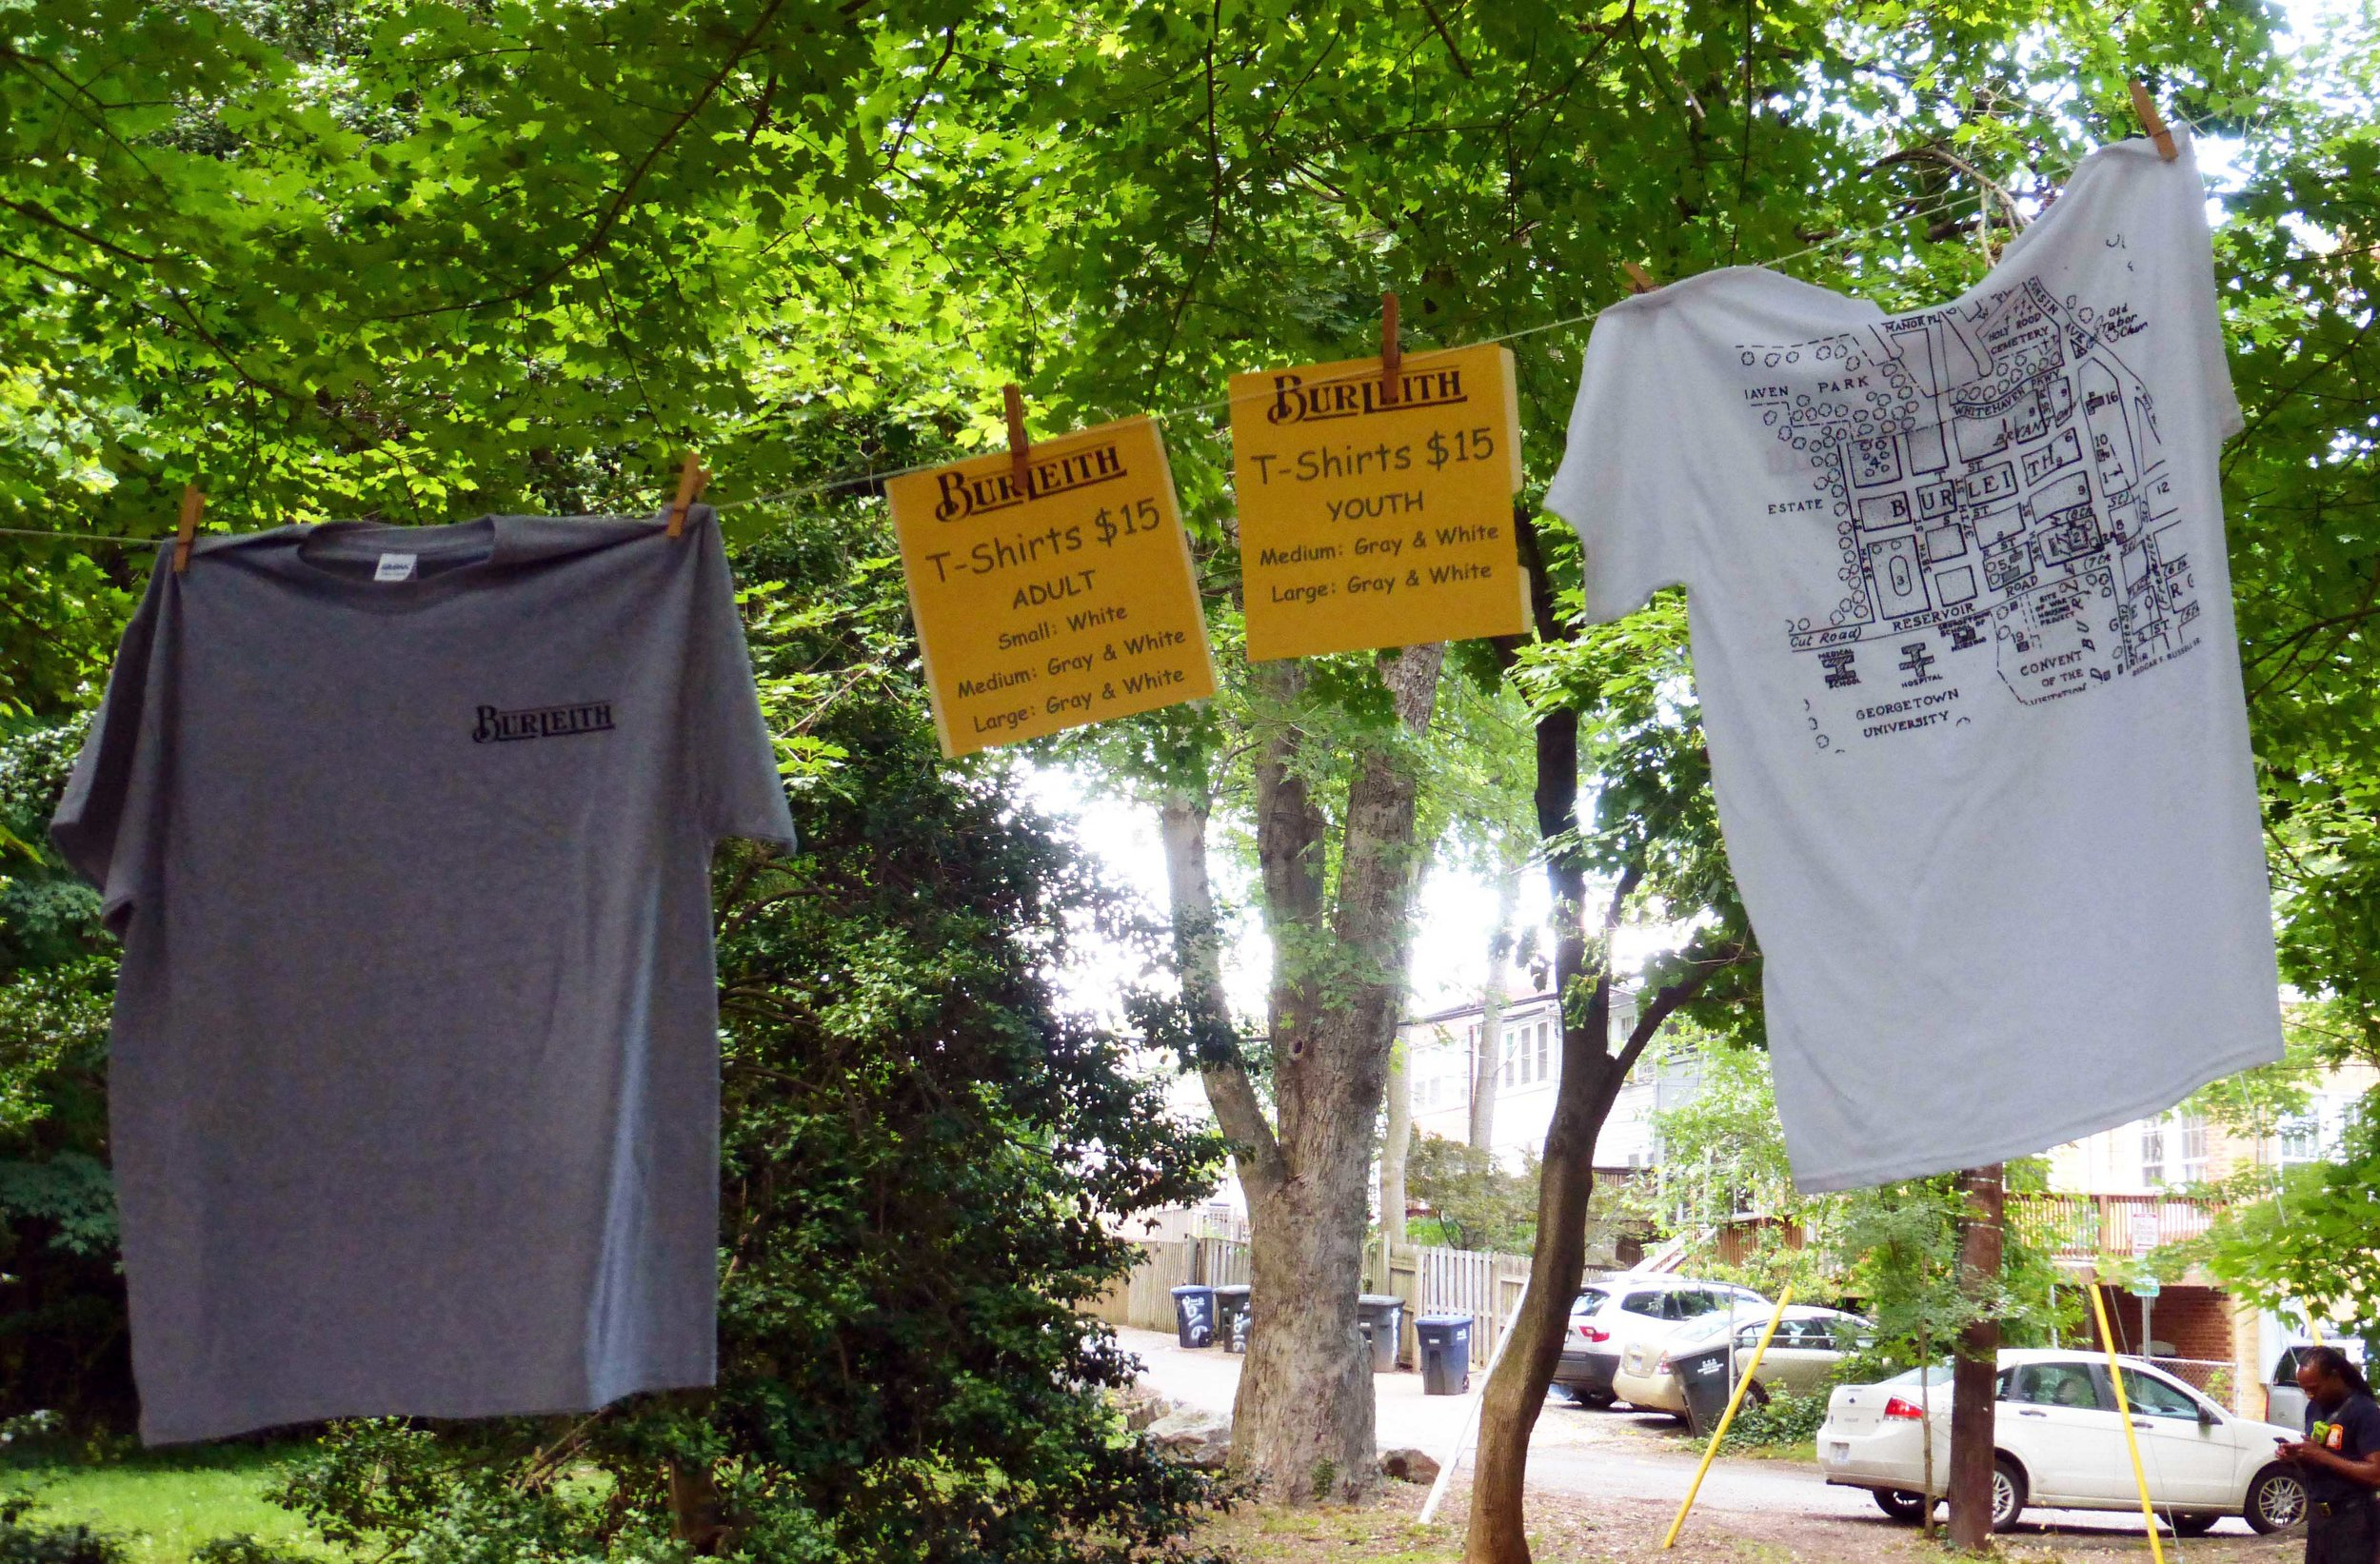 gray and white t-shirts in adult and youth sizes are still available. email bell@burleith.org to order.